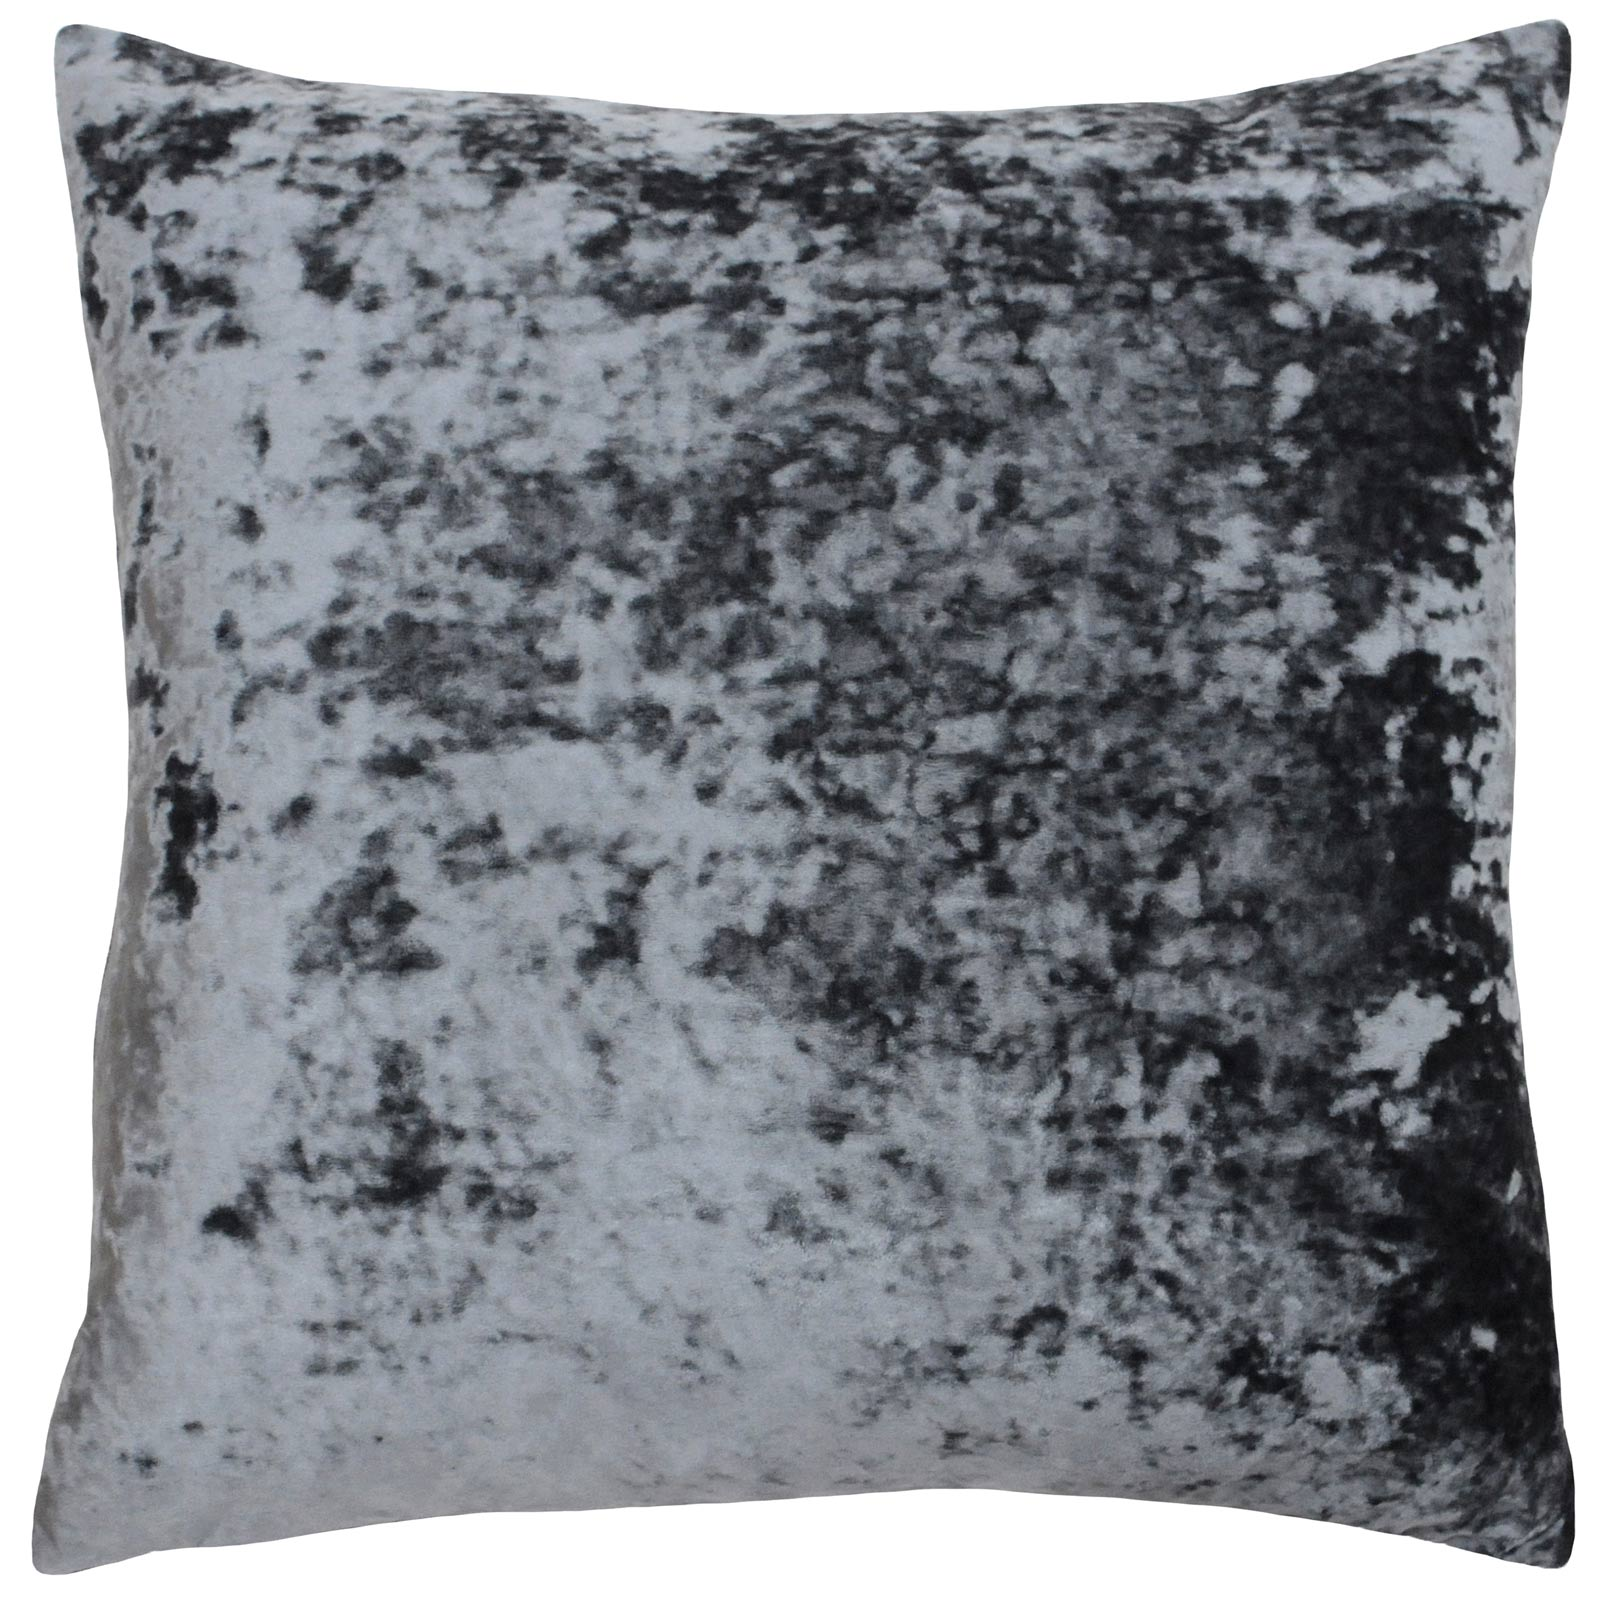 Verona Crushed Velvet Pewter Filled Cushions 22'' x 22'' - Polyester Pad - Ideal Textiles